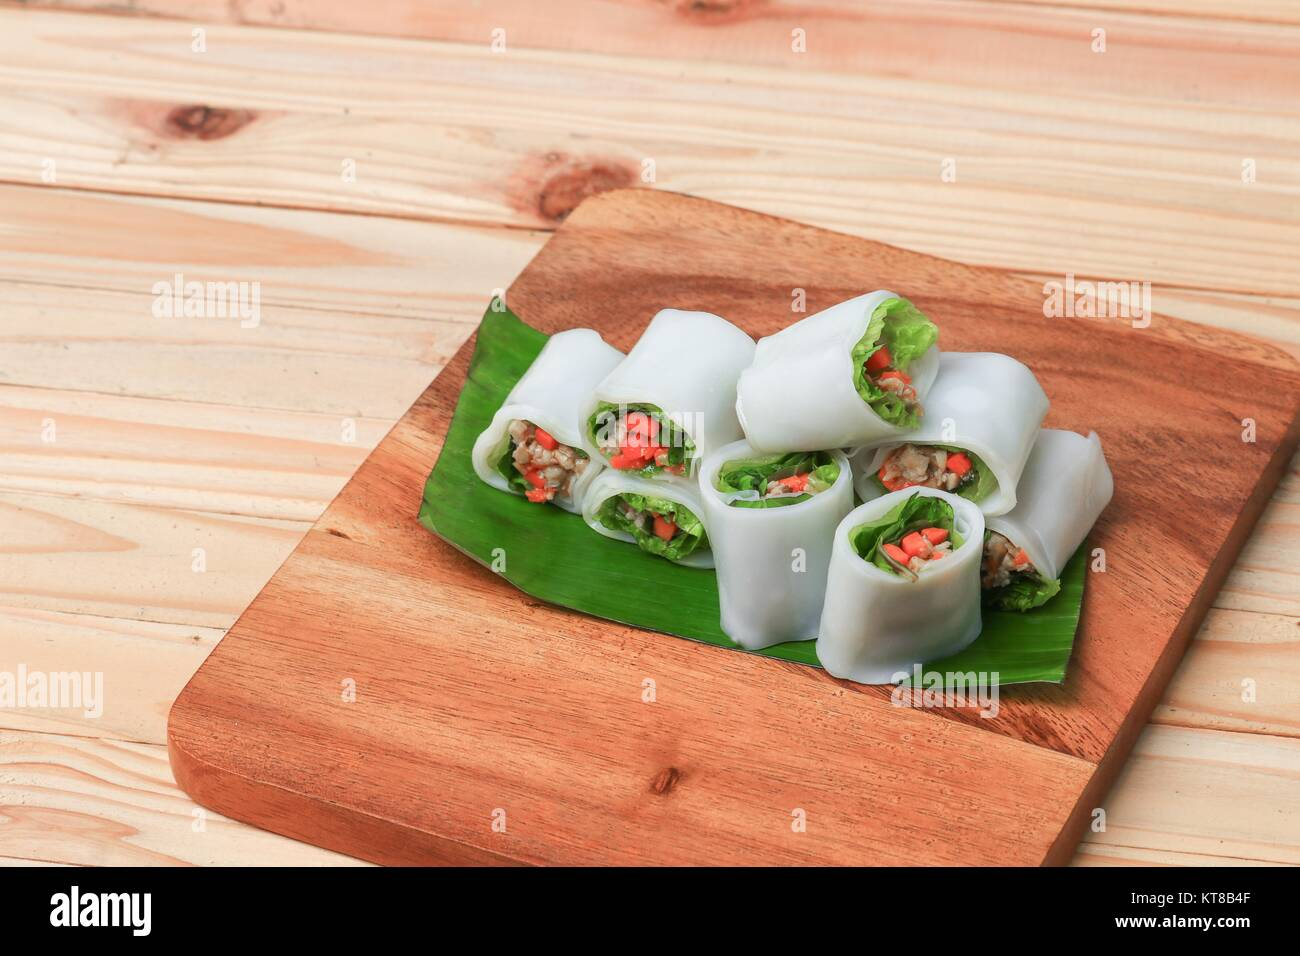 Spring Roll With Vegetable On Banana Leaf Wood Floor Background Stock Photo Alamy